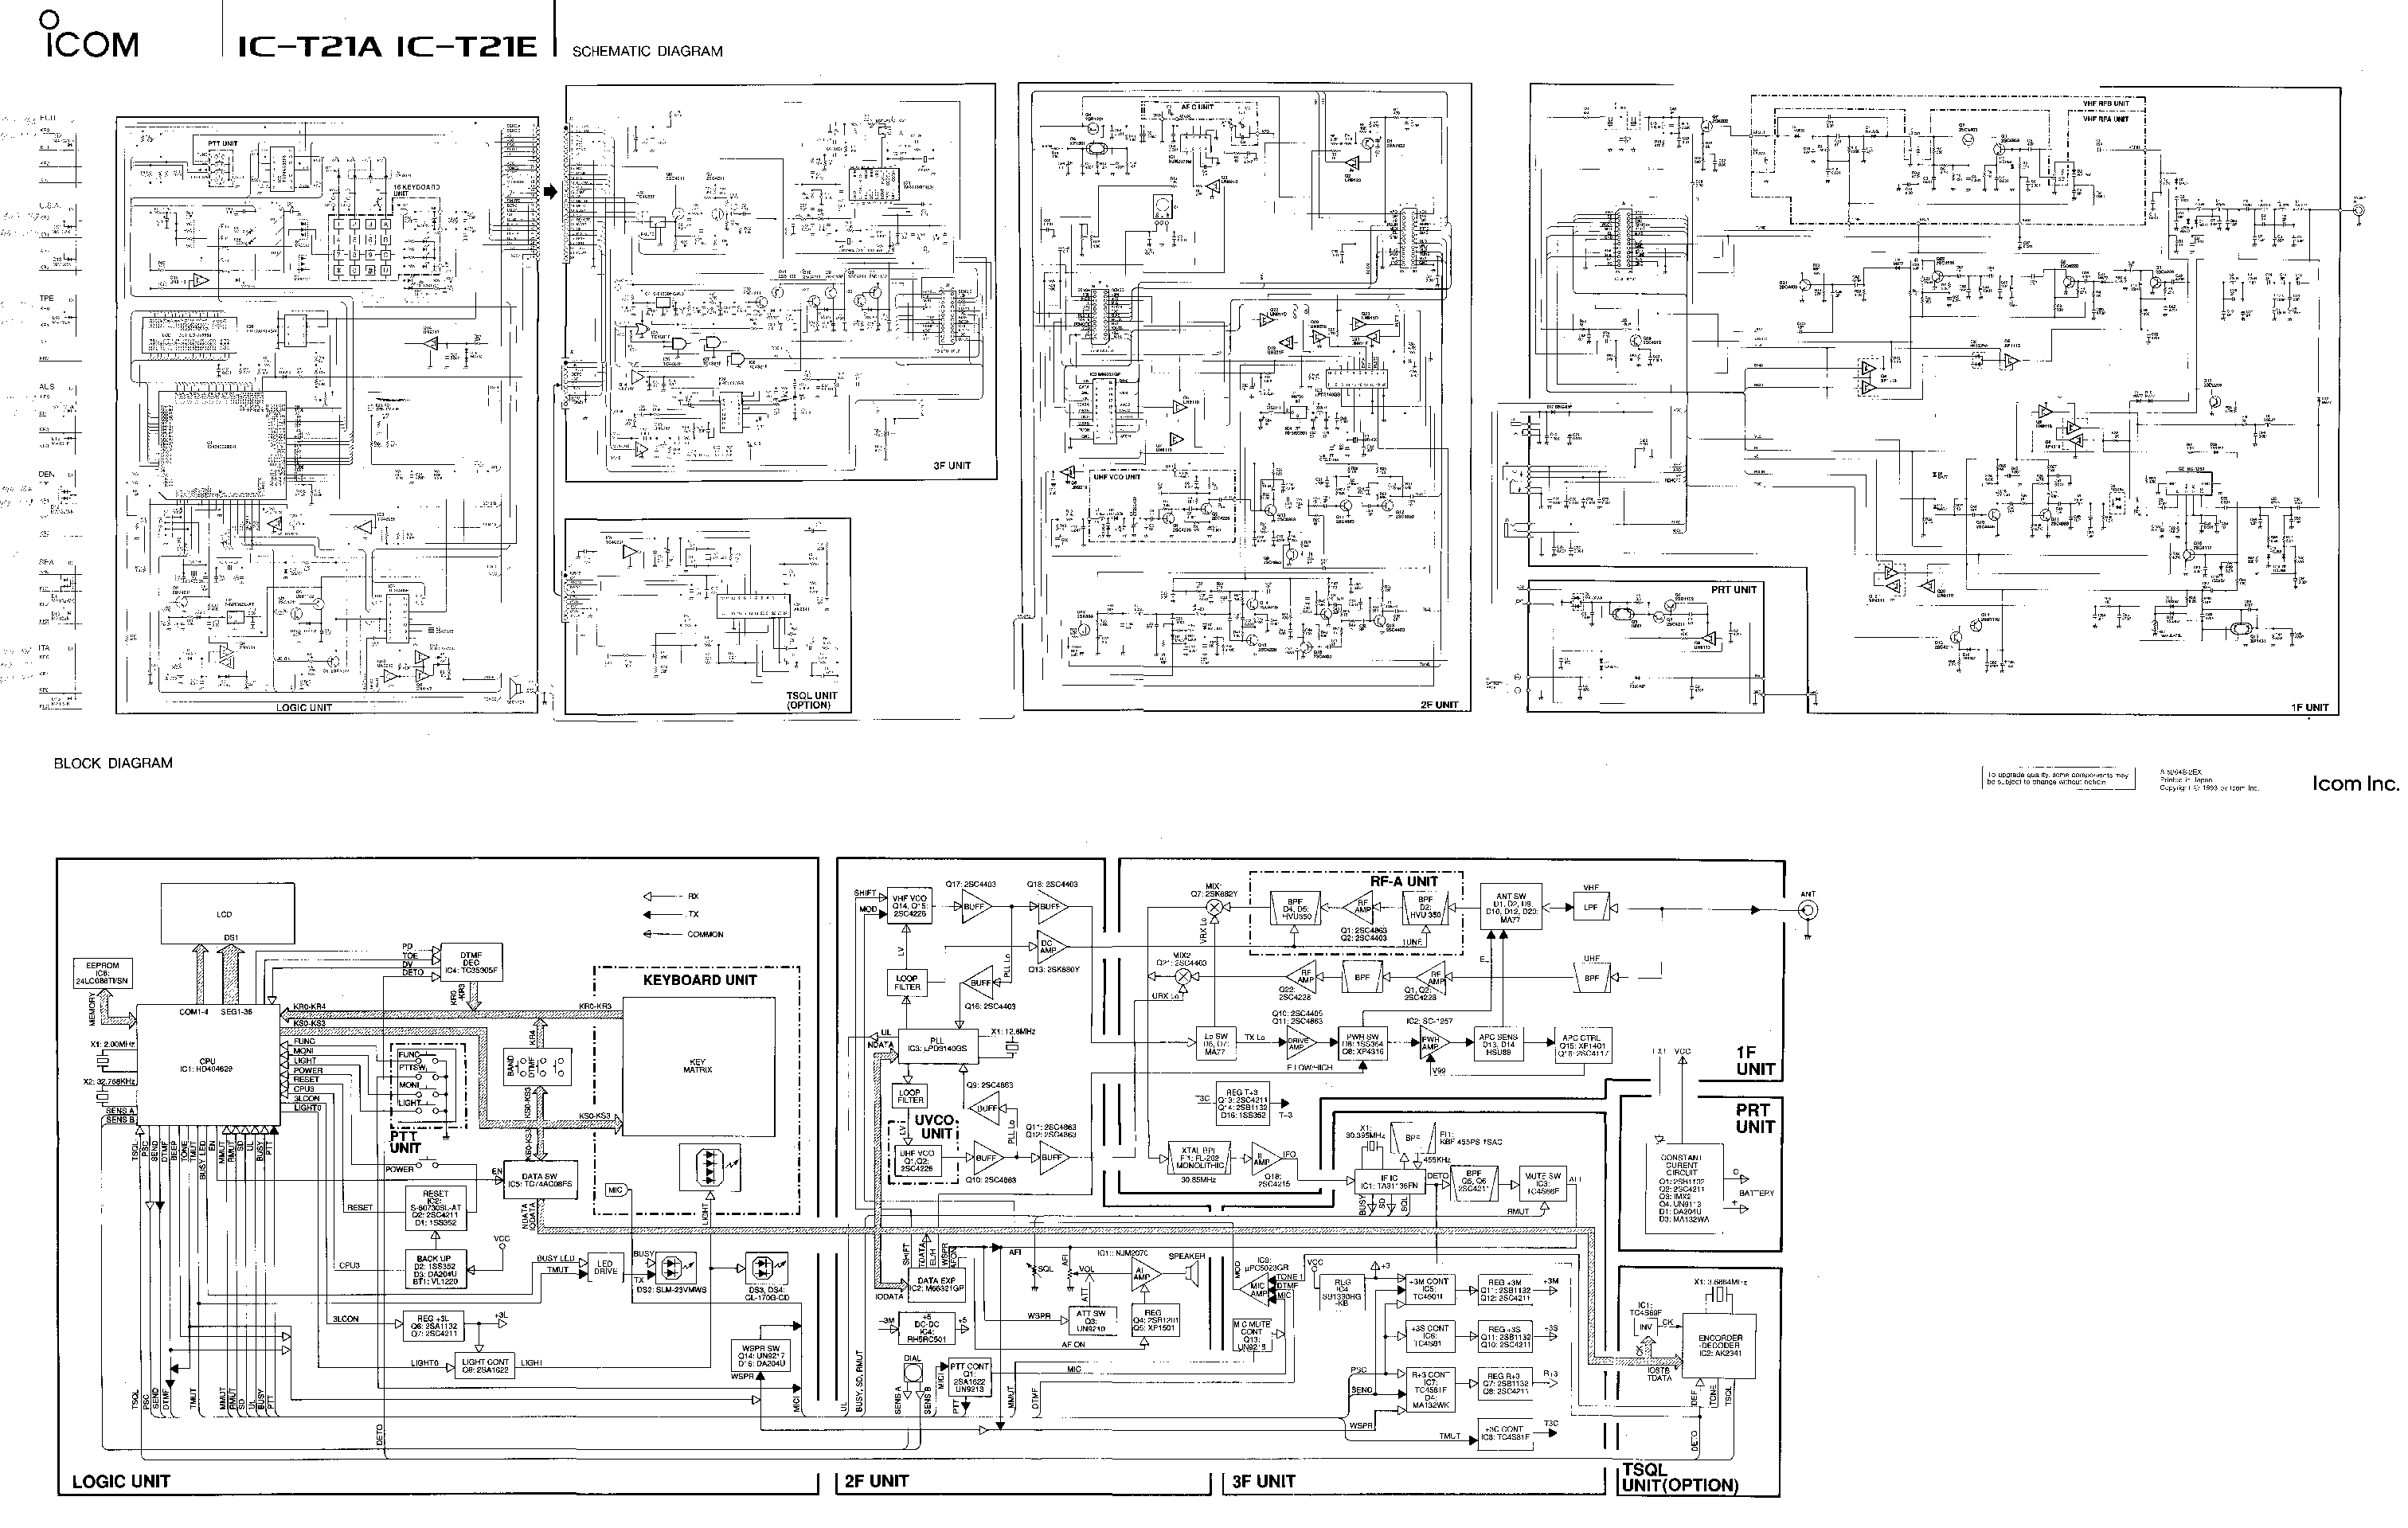 Icom a 21 manual various owner manual guide icom ic 21 schematic service manual download schematics eeprom rh elektrotanya com bmw icom icom a22 manual asfbconference2016